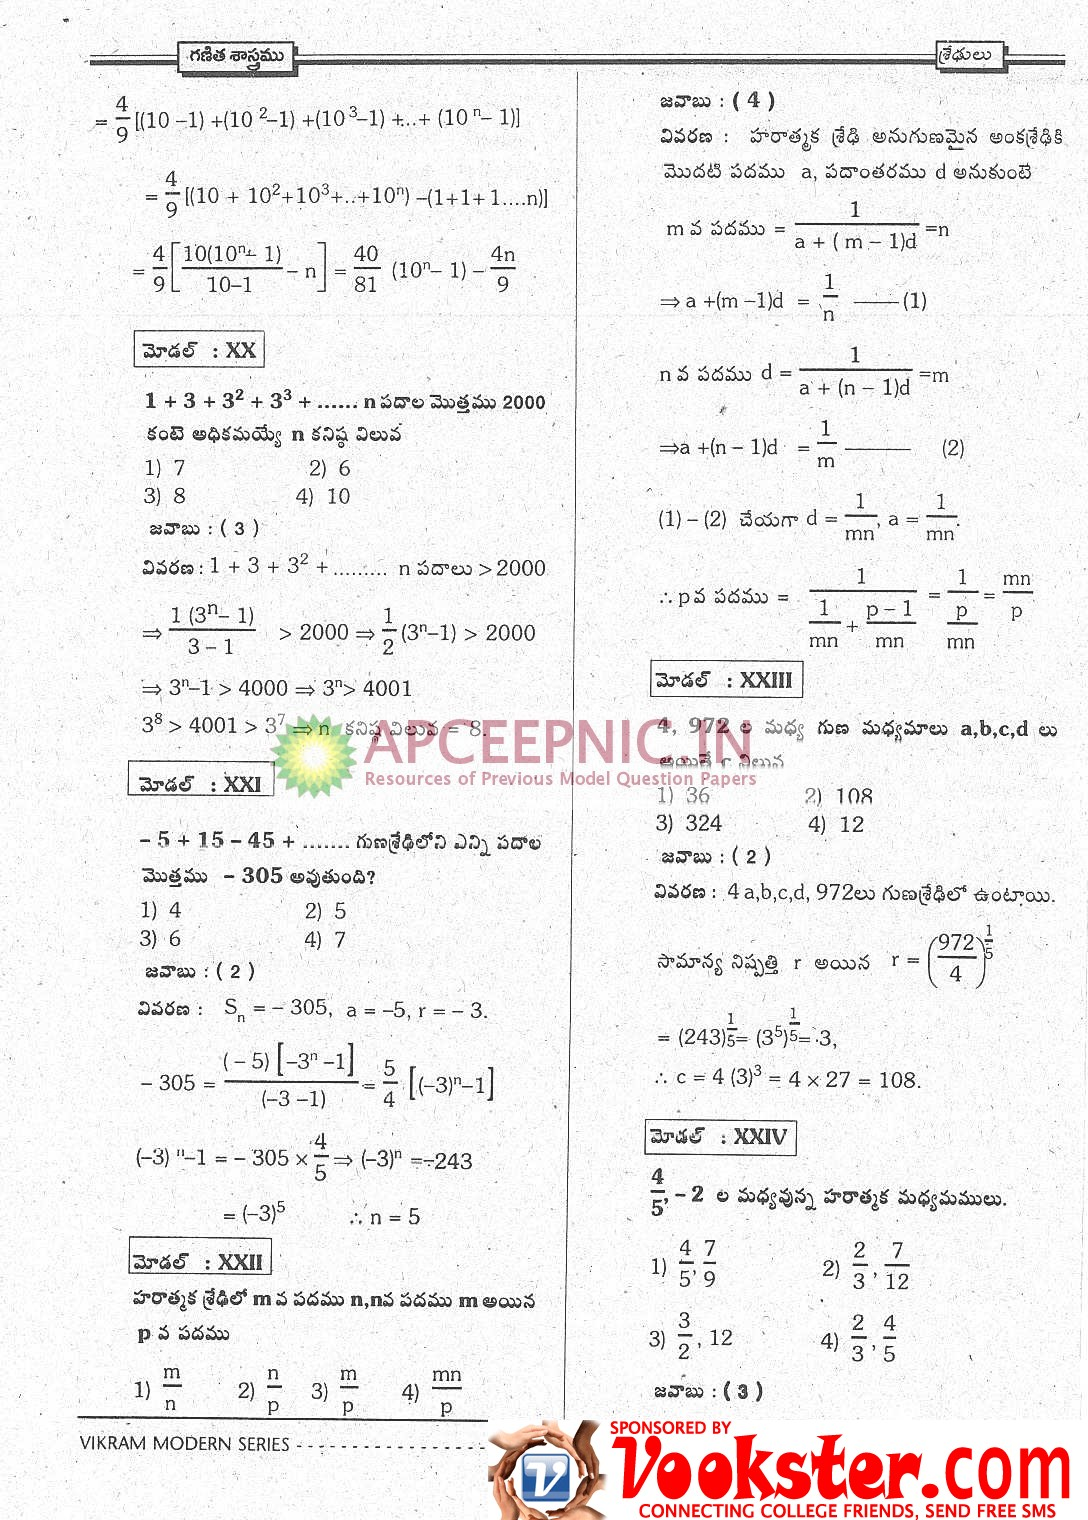 mib 3 rd semister solved papers Bca semester 3rd question papers mcs-021 home bca 3rd semester bcs-031 bcsl-032 bcsl-033 mcs-014 mcs-021 mcs-023 old and pre-question papers bca semester 3rd question papers share your solved assignment with us and earn free paytm cash upload file.